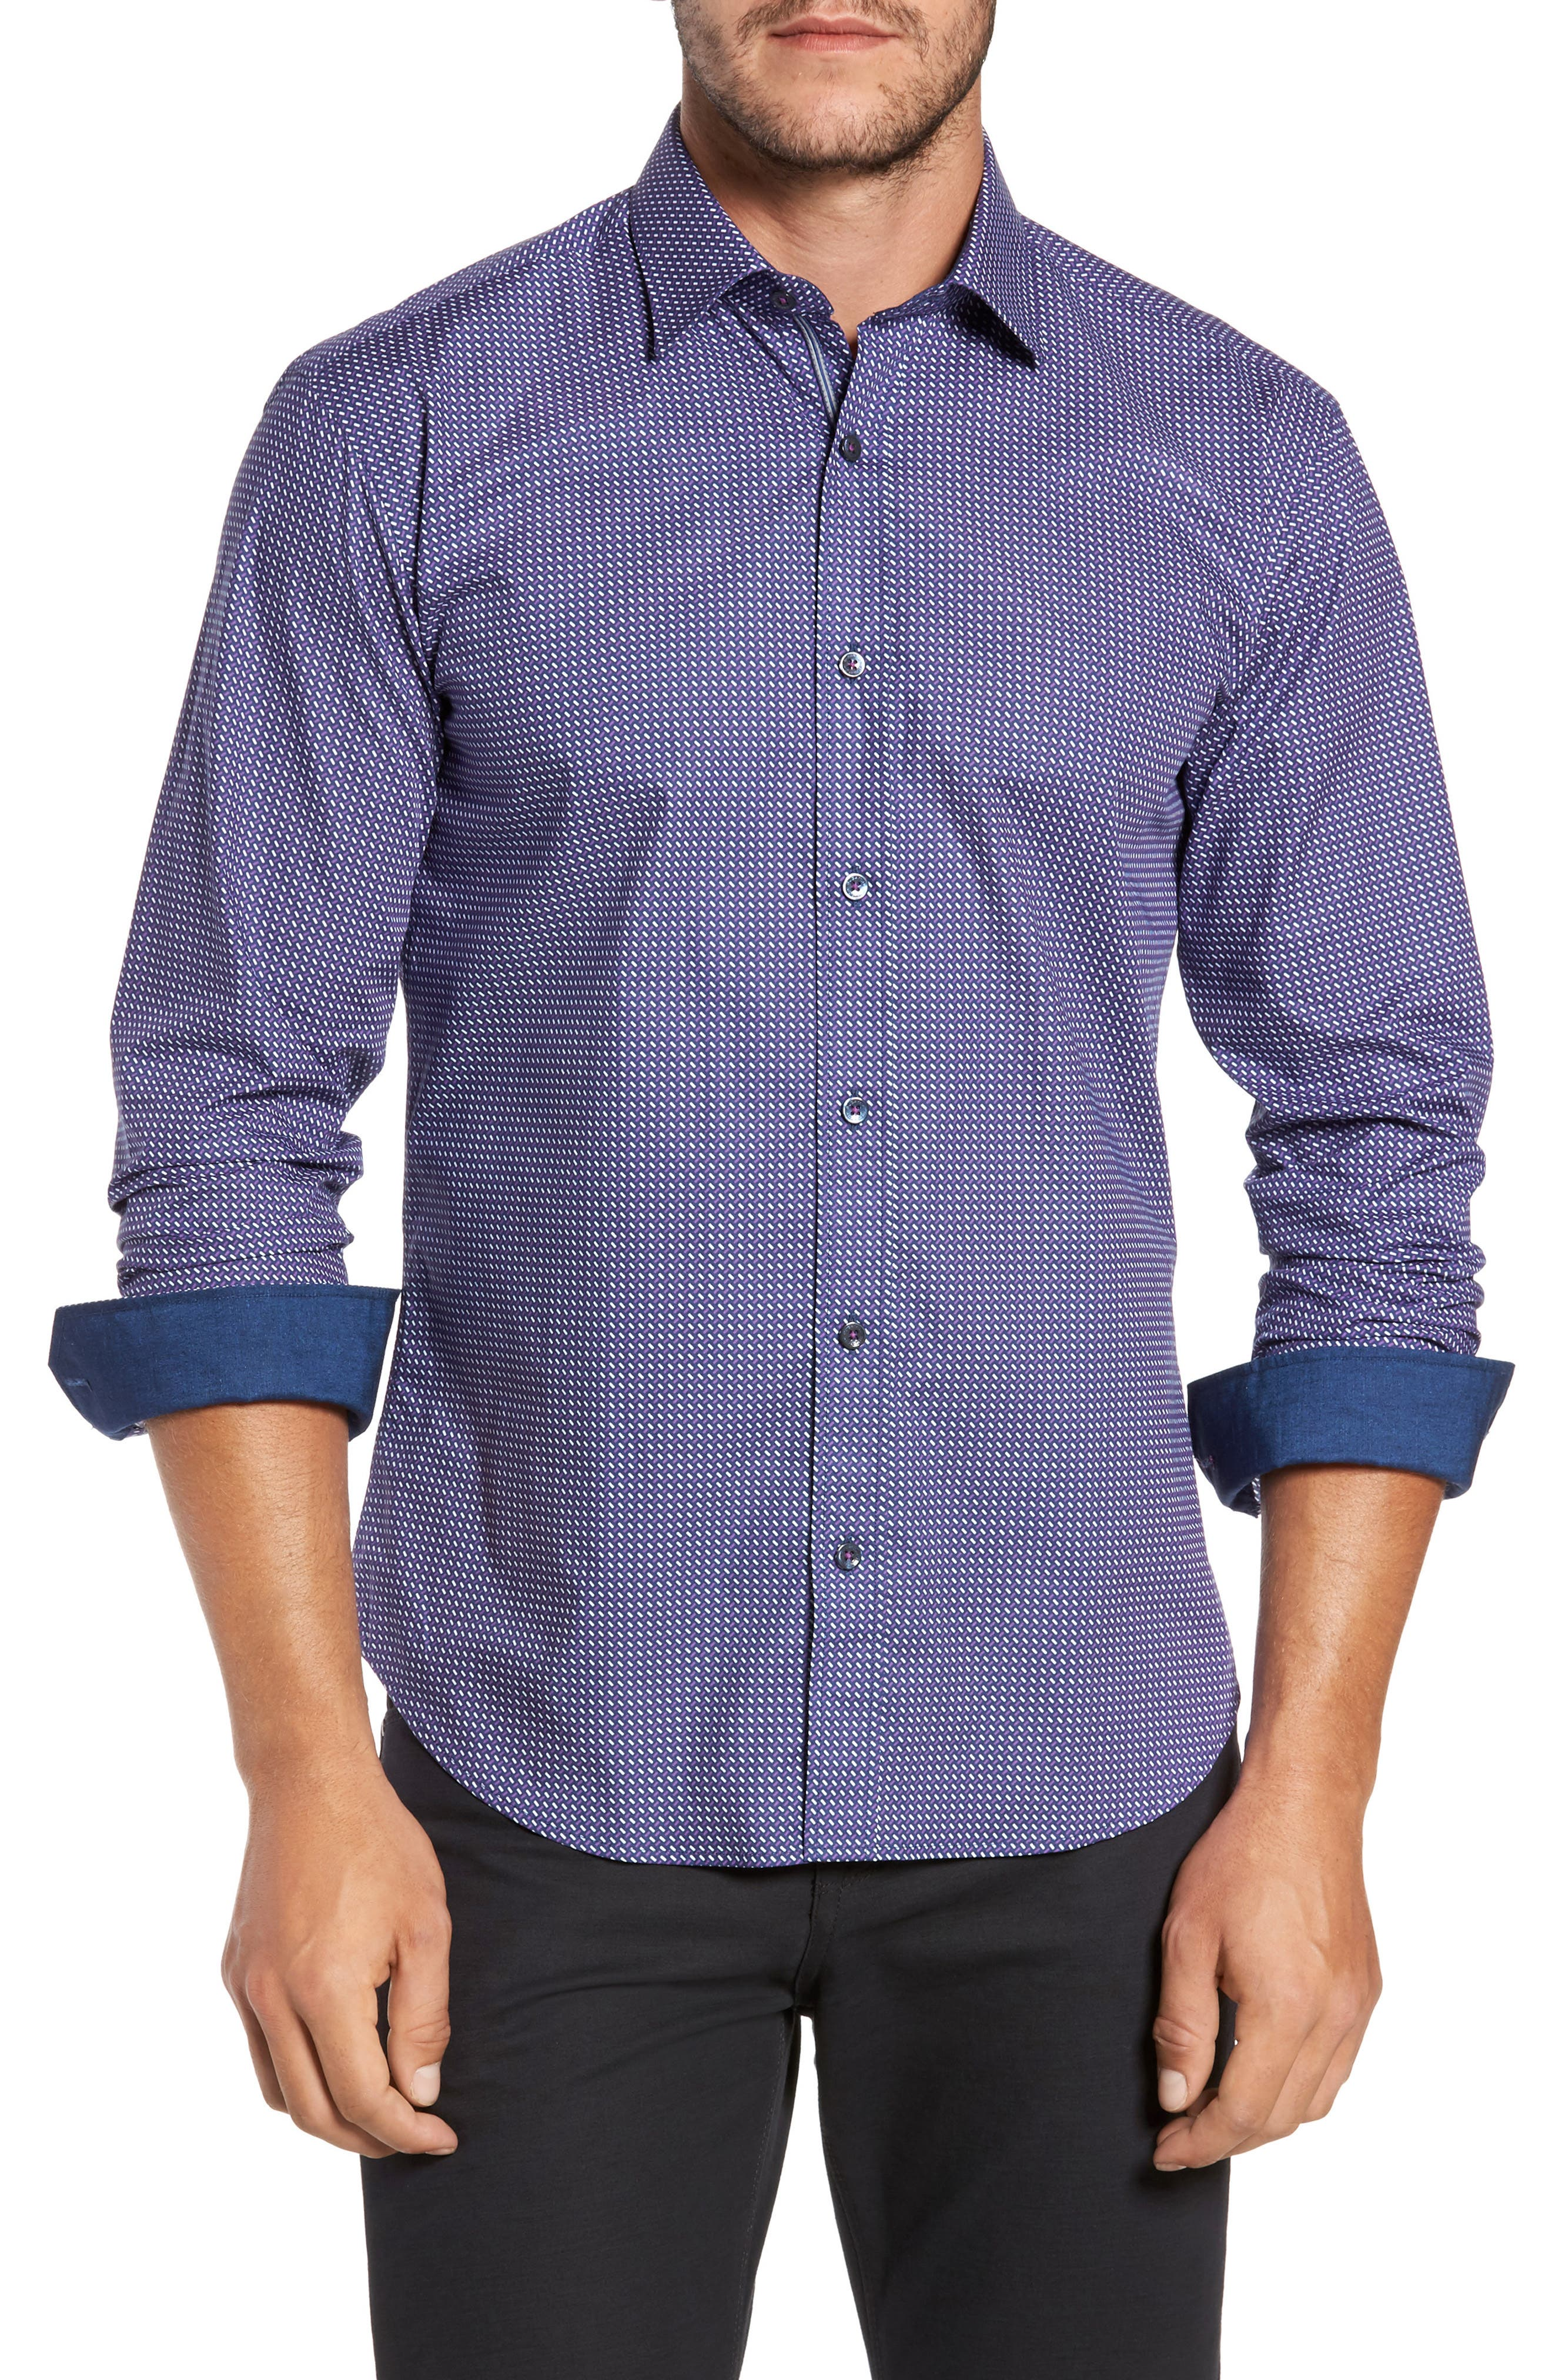 Alternate Image 1 Selected - Bugatchi Trim Fit Weave Print Sport Shirt